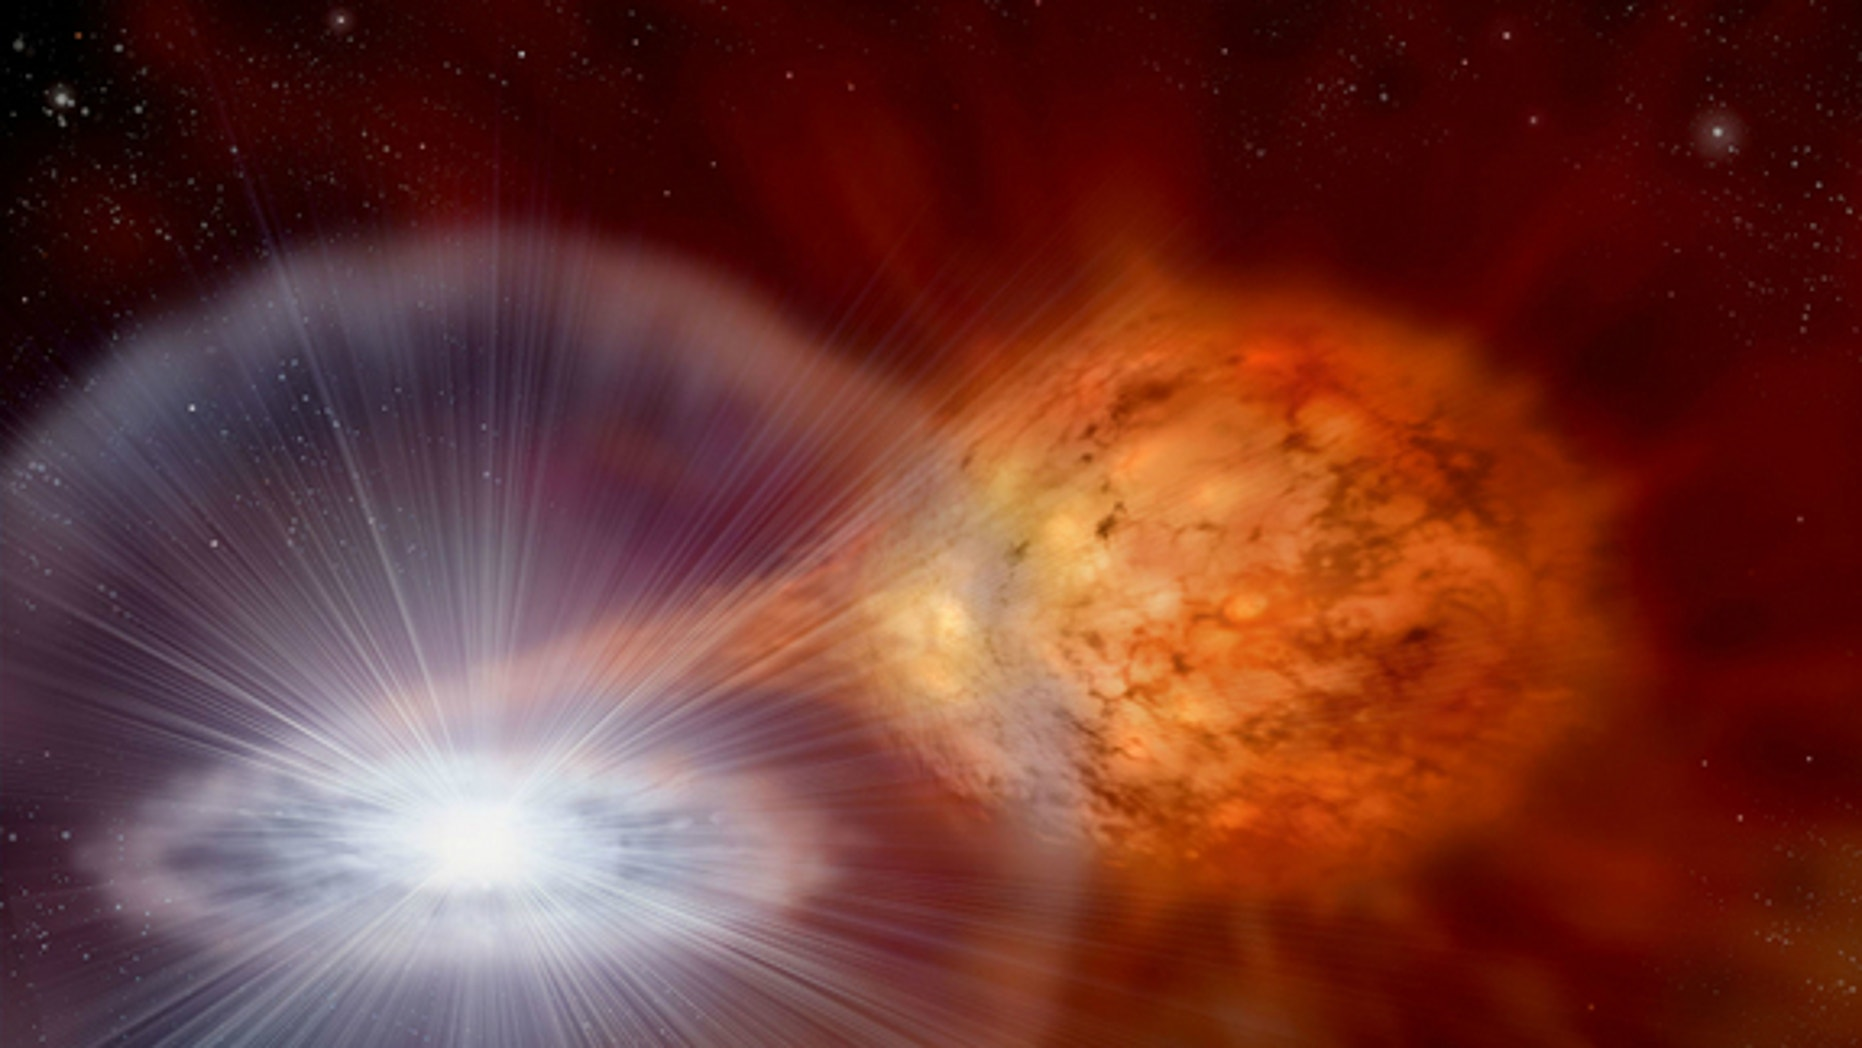 An artist's rendering of an exploding star. Billions of years ago, dust from a stellar explosion like this may have made its way to Earth.